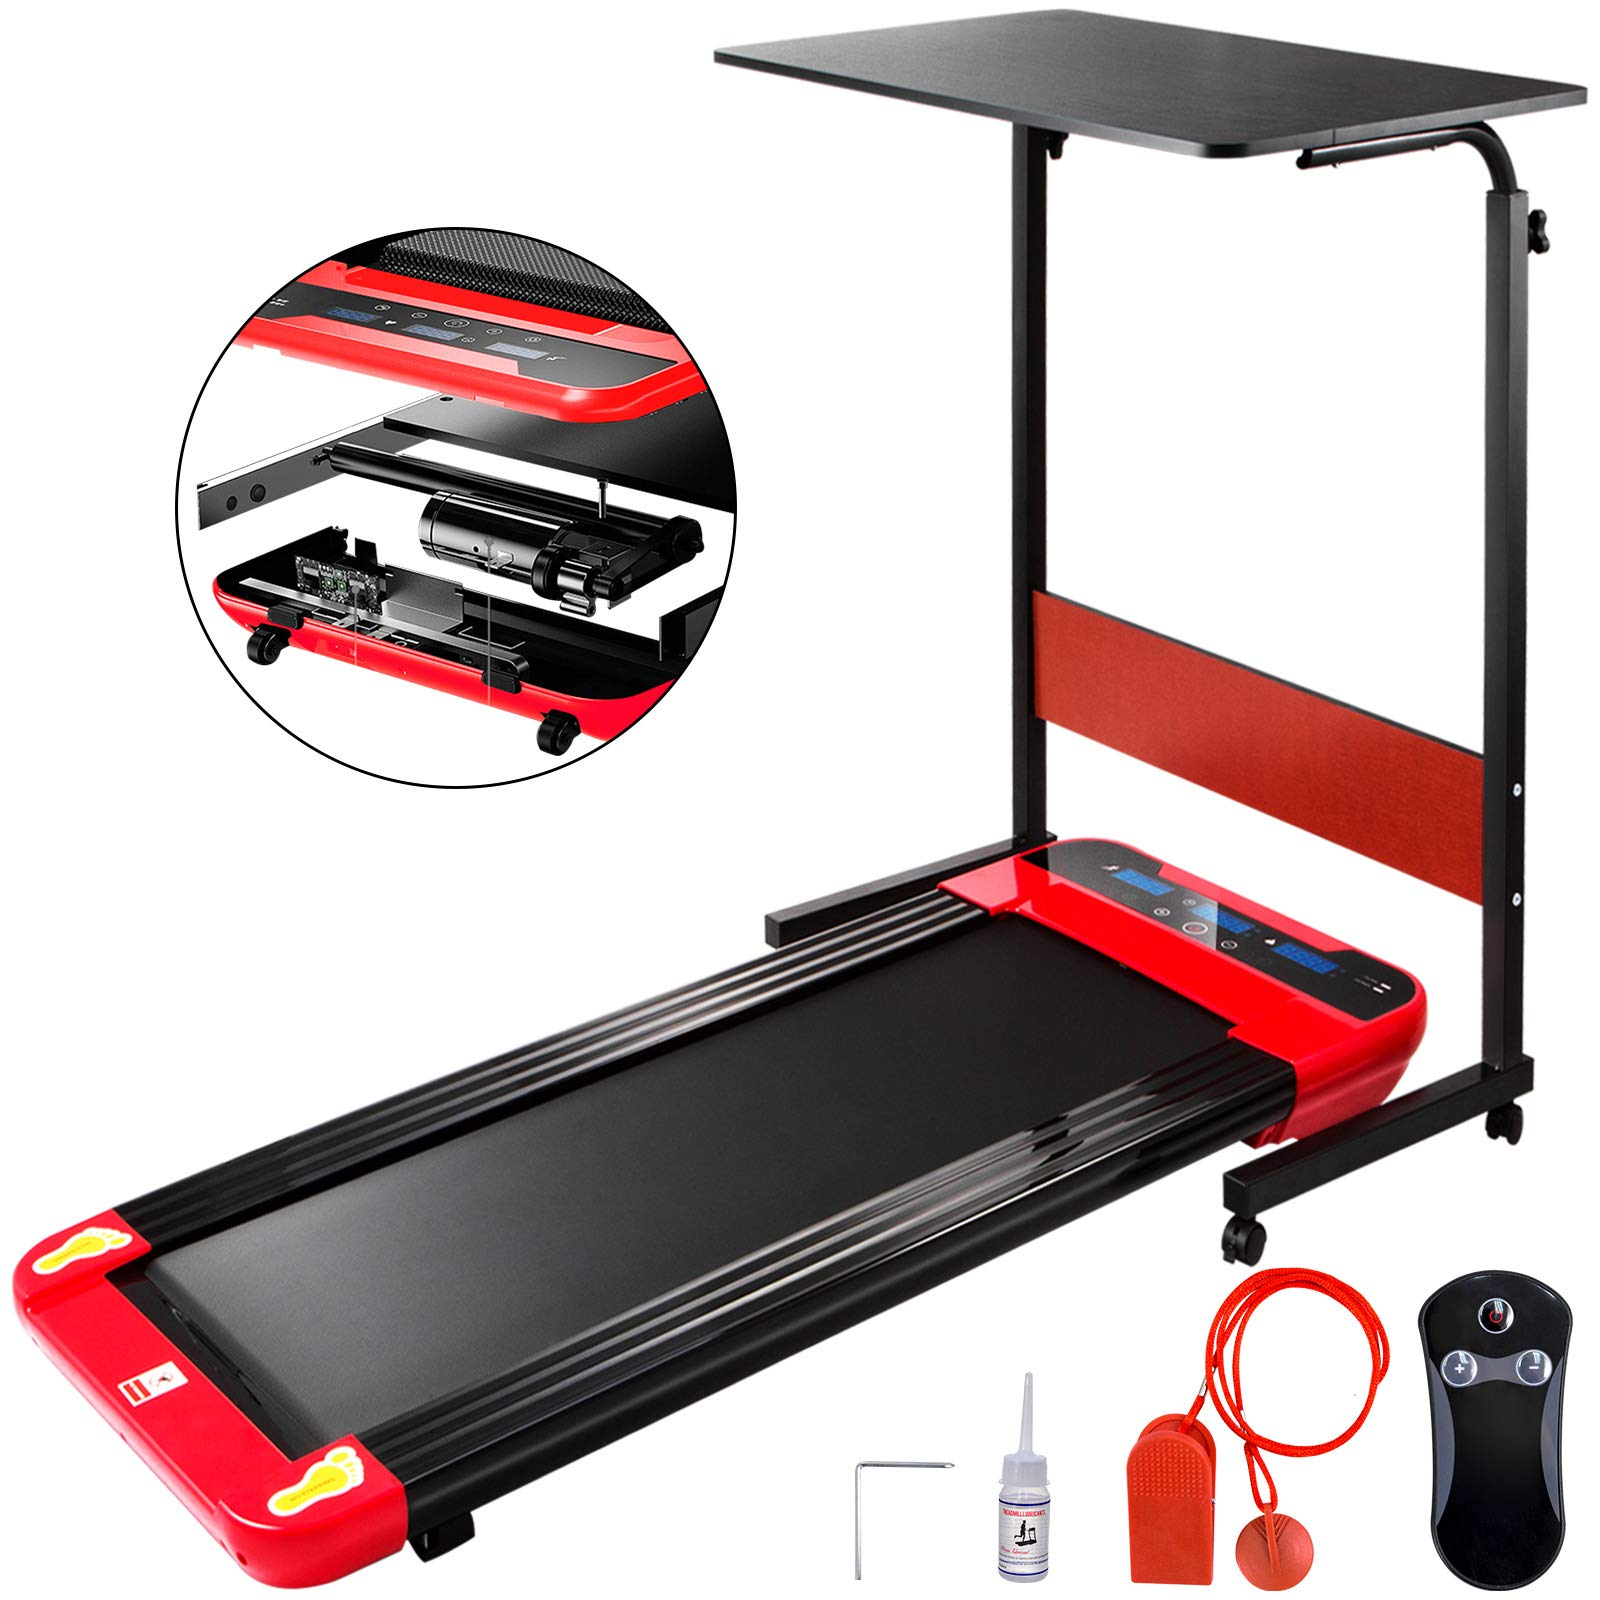 Popsport Treadly Treadmill Running Surface Compact Slim Fitness Training Cardio Equipment for Home Workouts(Red & Black with Desk)